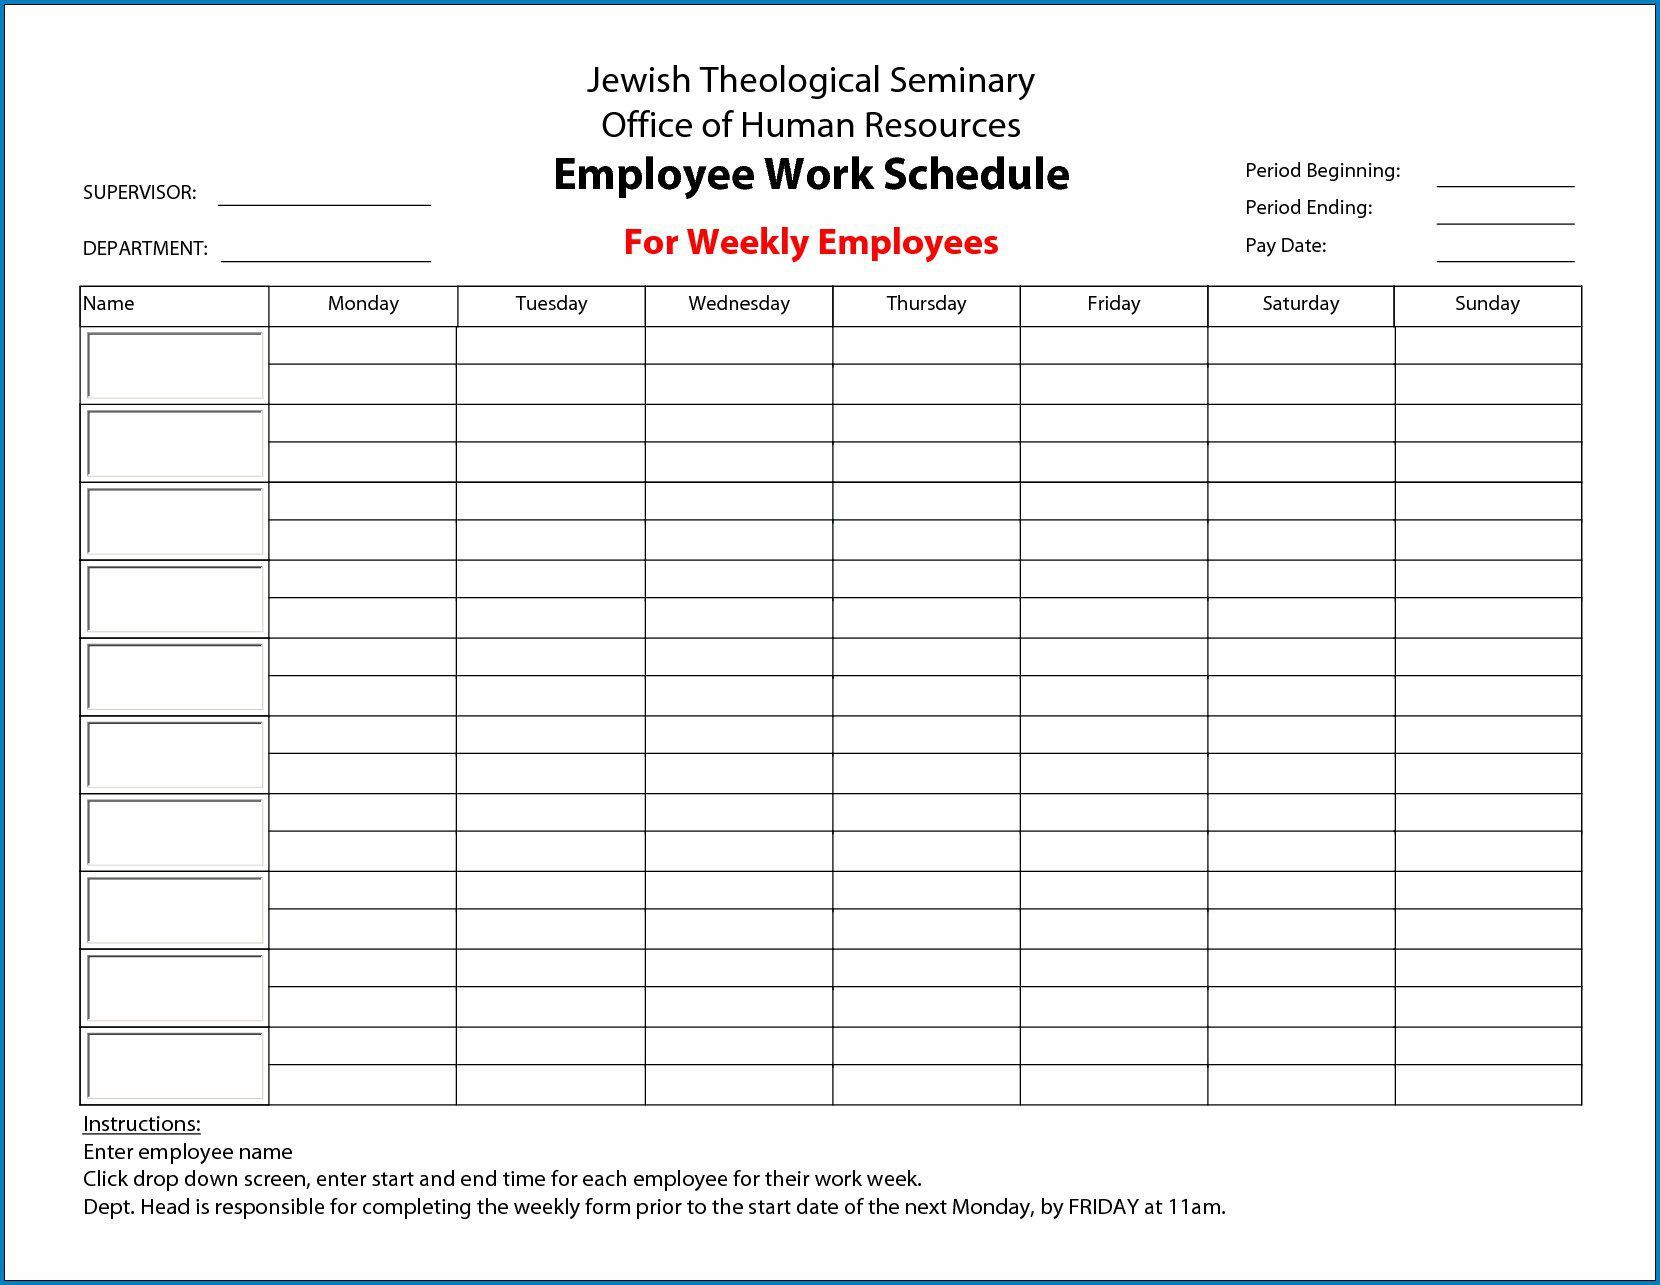 000 Imposing Free Employee Scheduling Template Highest Quality  Templates Weekly Work Schedule Printable Training Plan ExcelFull